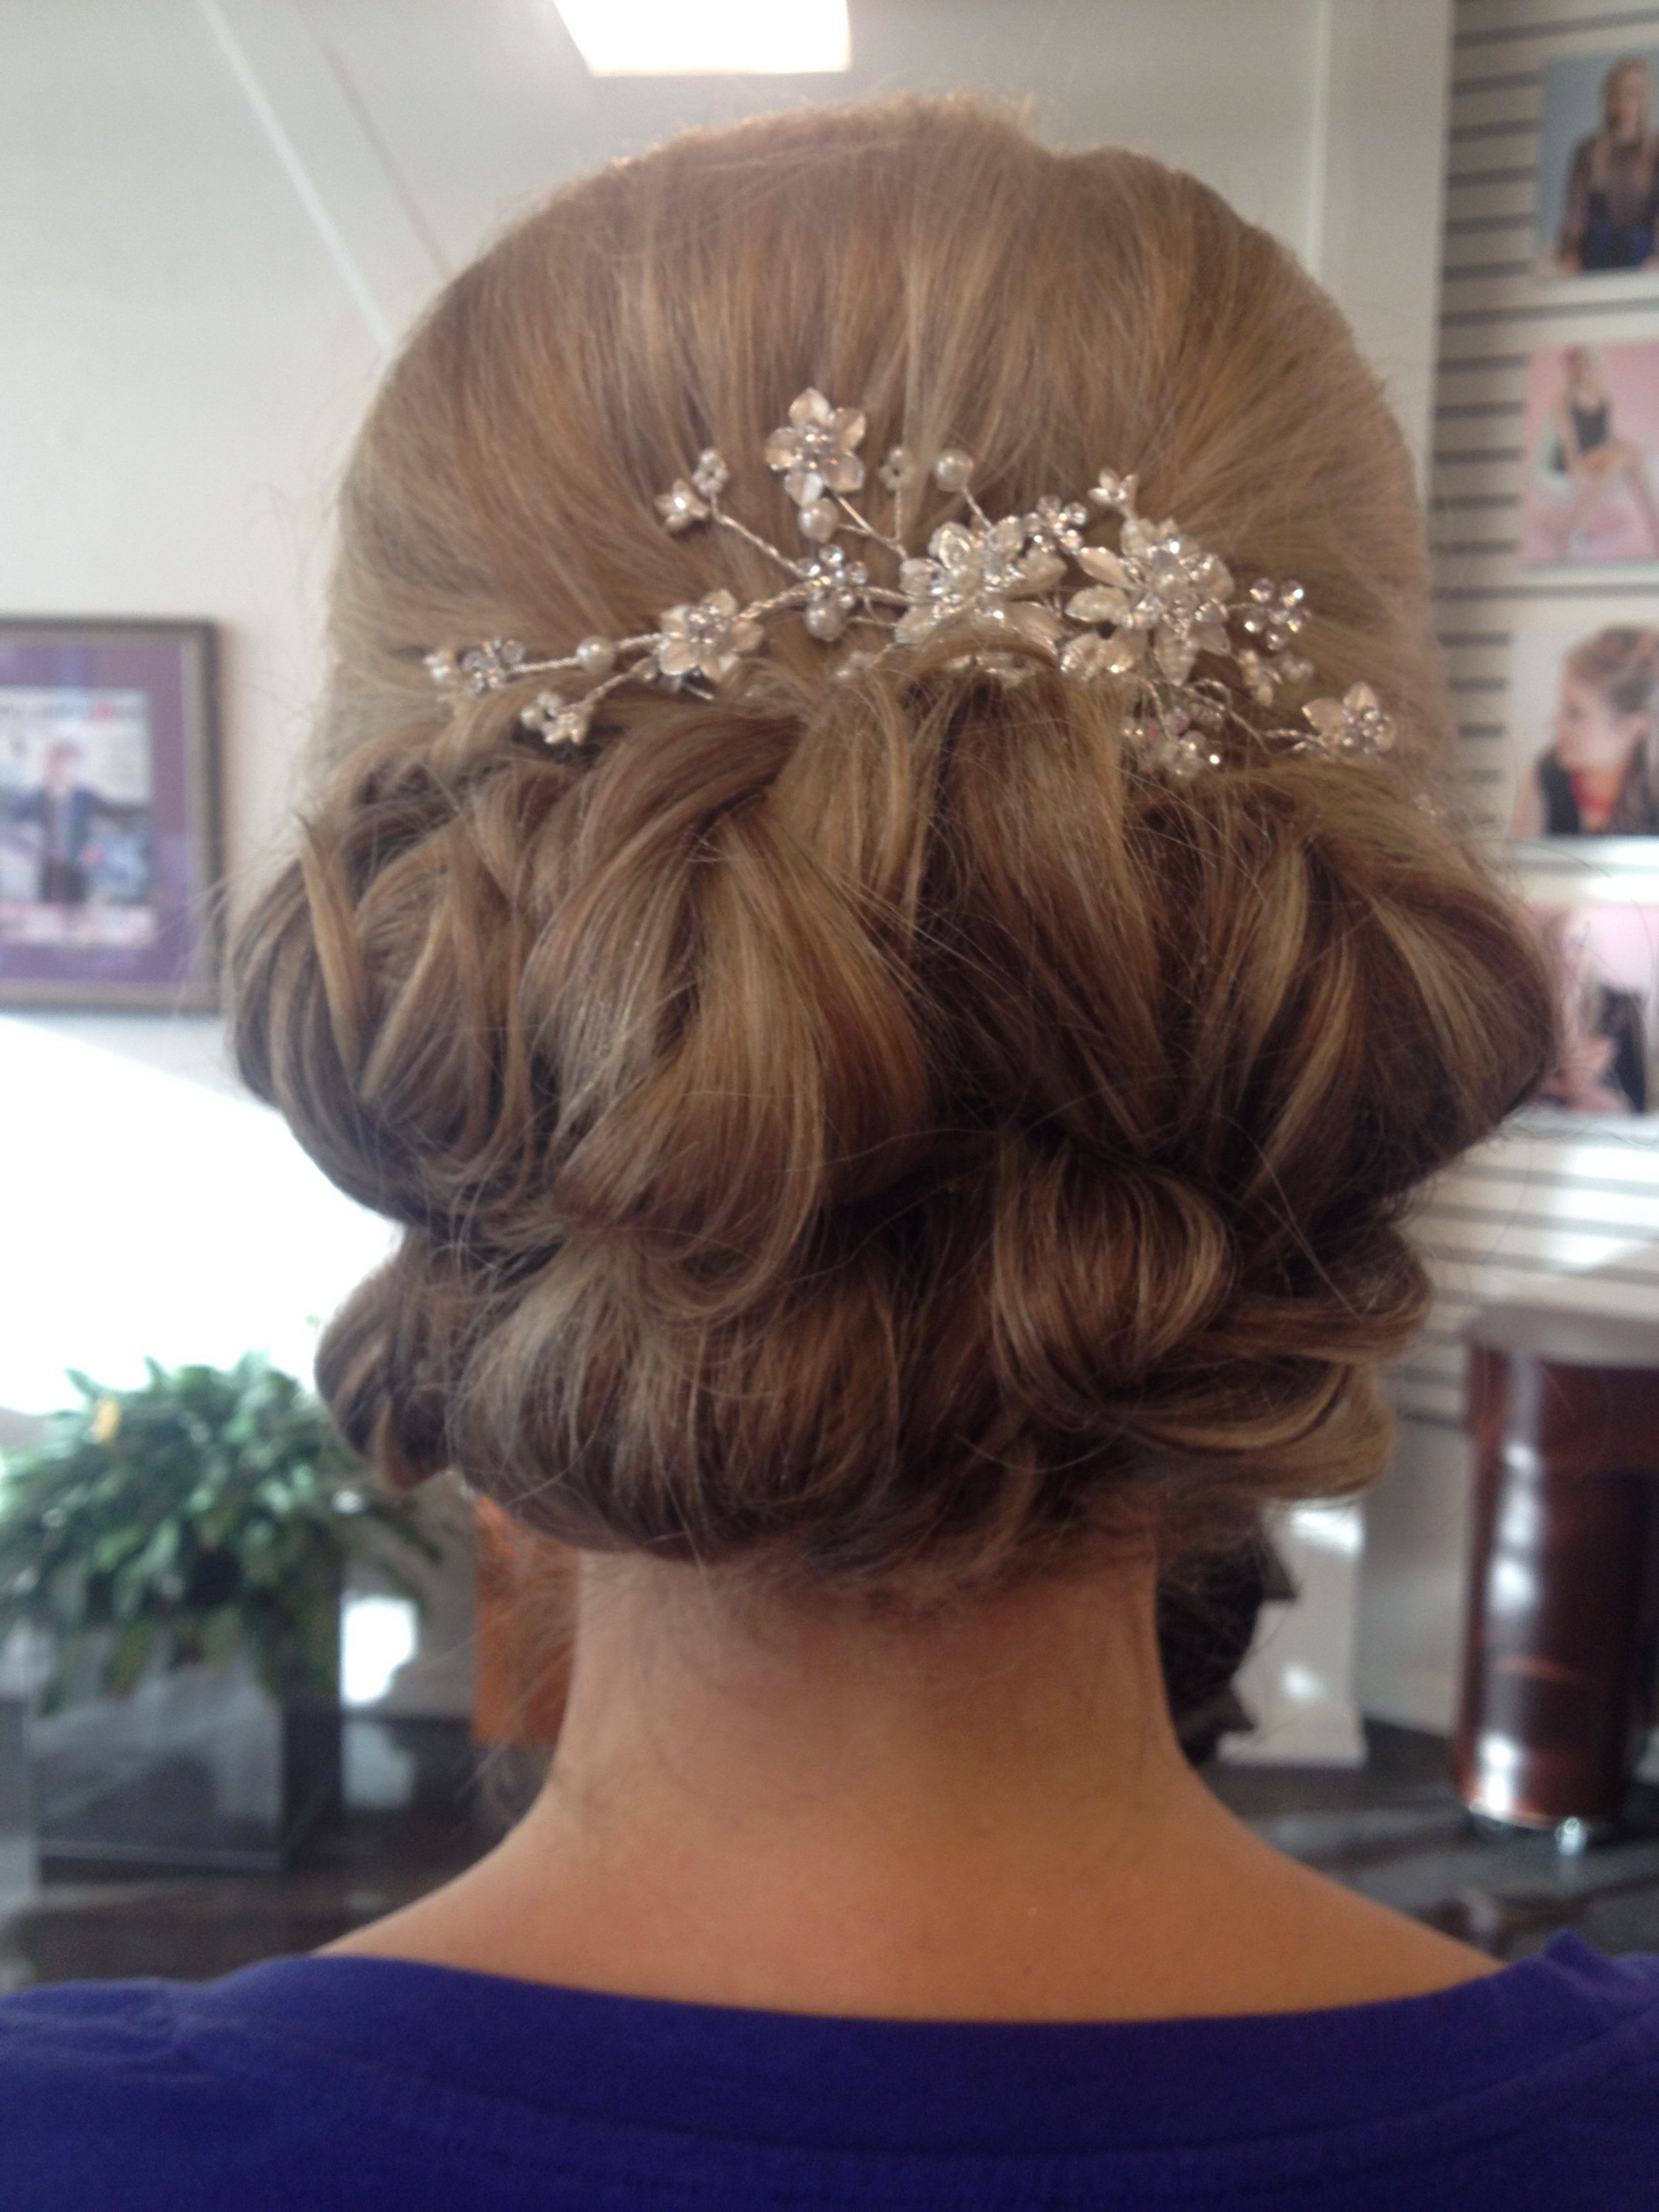 Most Recent High Volume Donut Bun Updo Hairstyles Throughout Low Curled Updo With High Volume And Decorative Hair Piece (View 7 of 20)